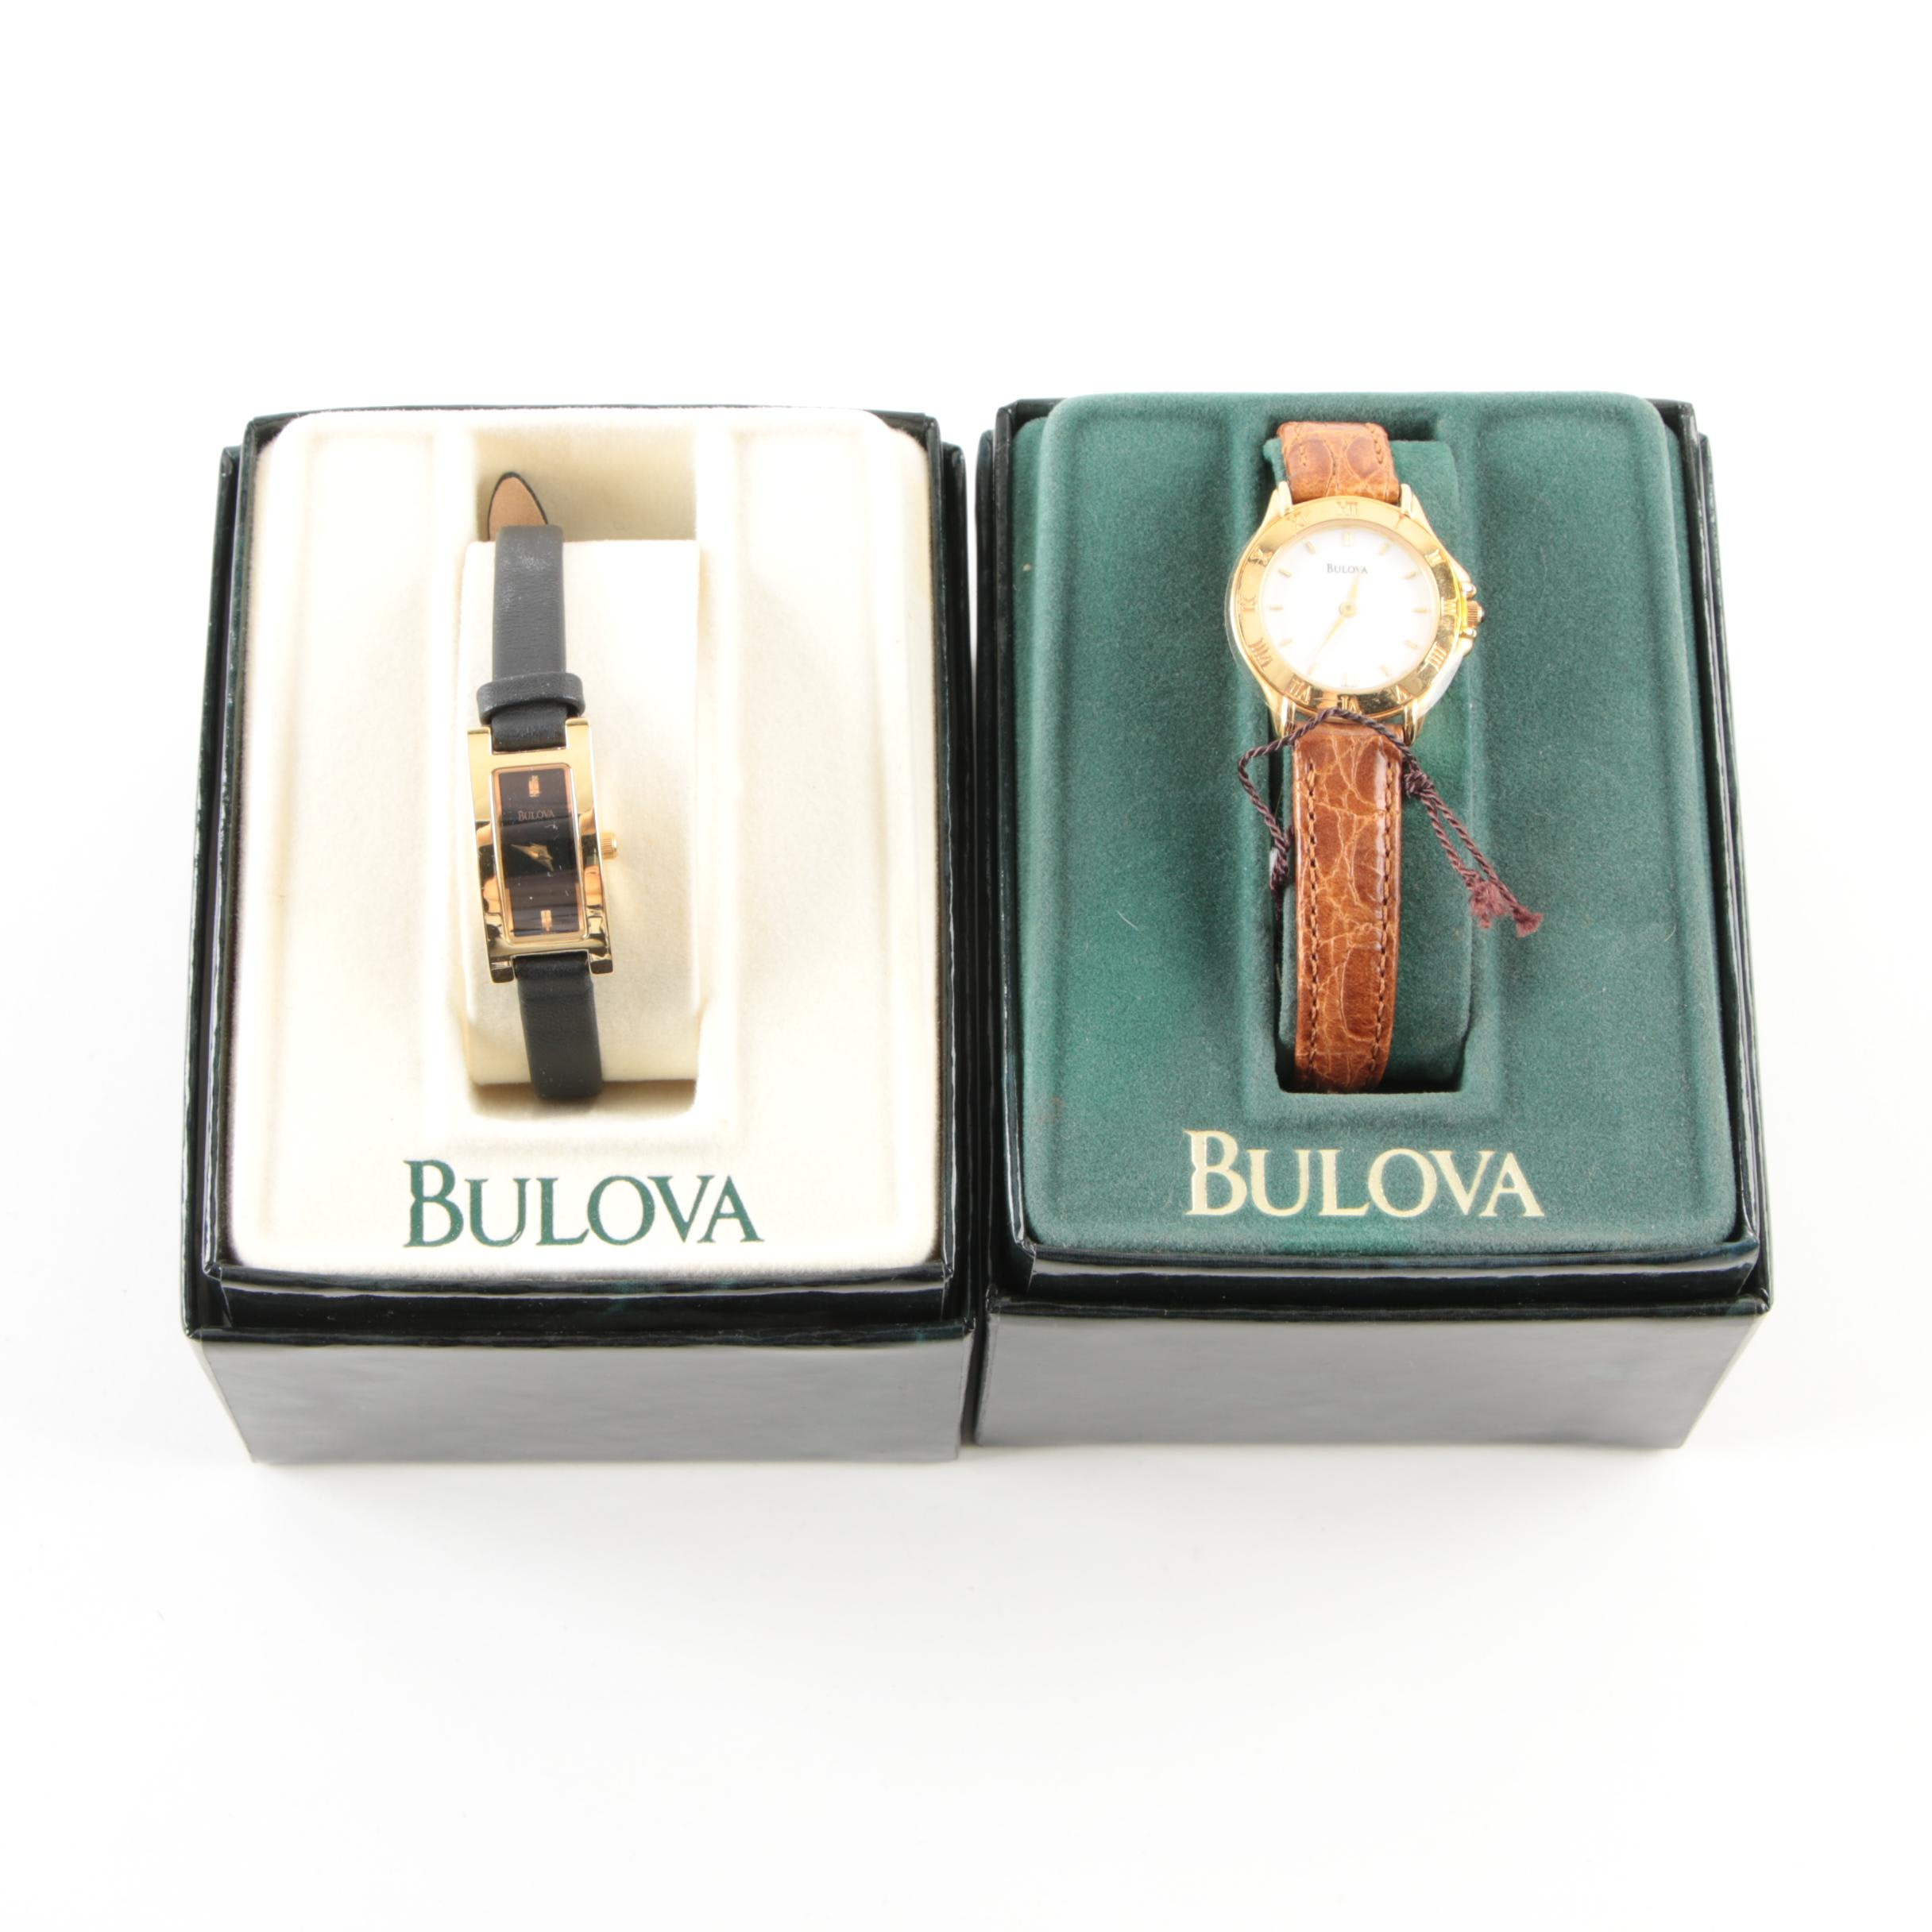 Bulova Gold Tone and Leather Wristwatches